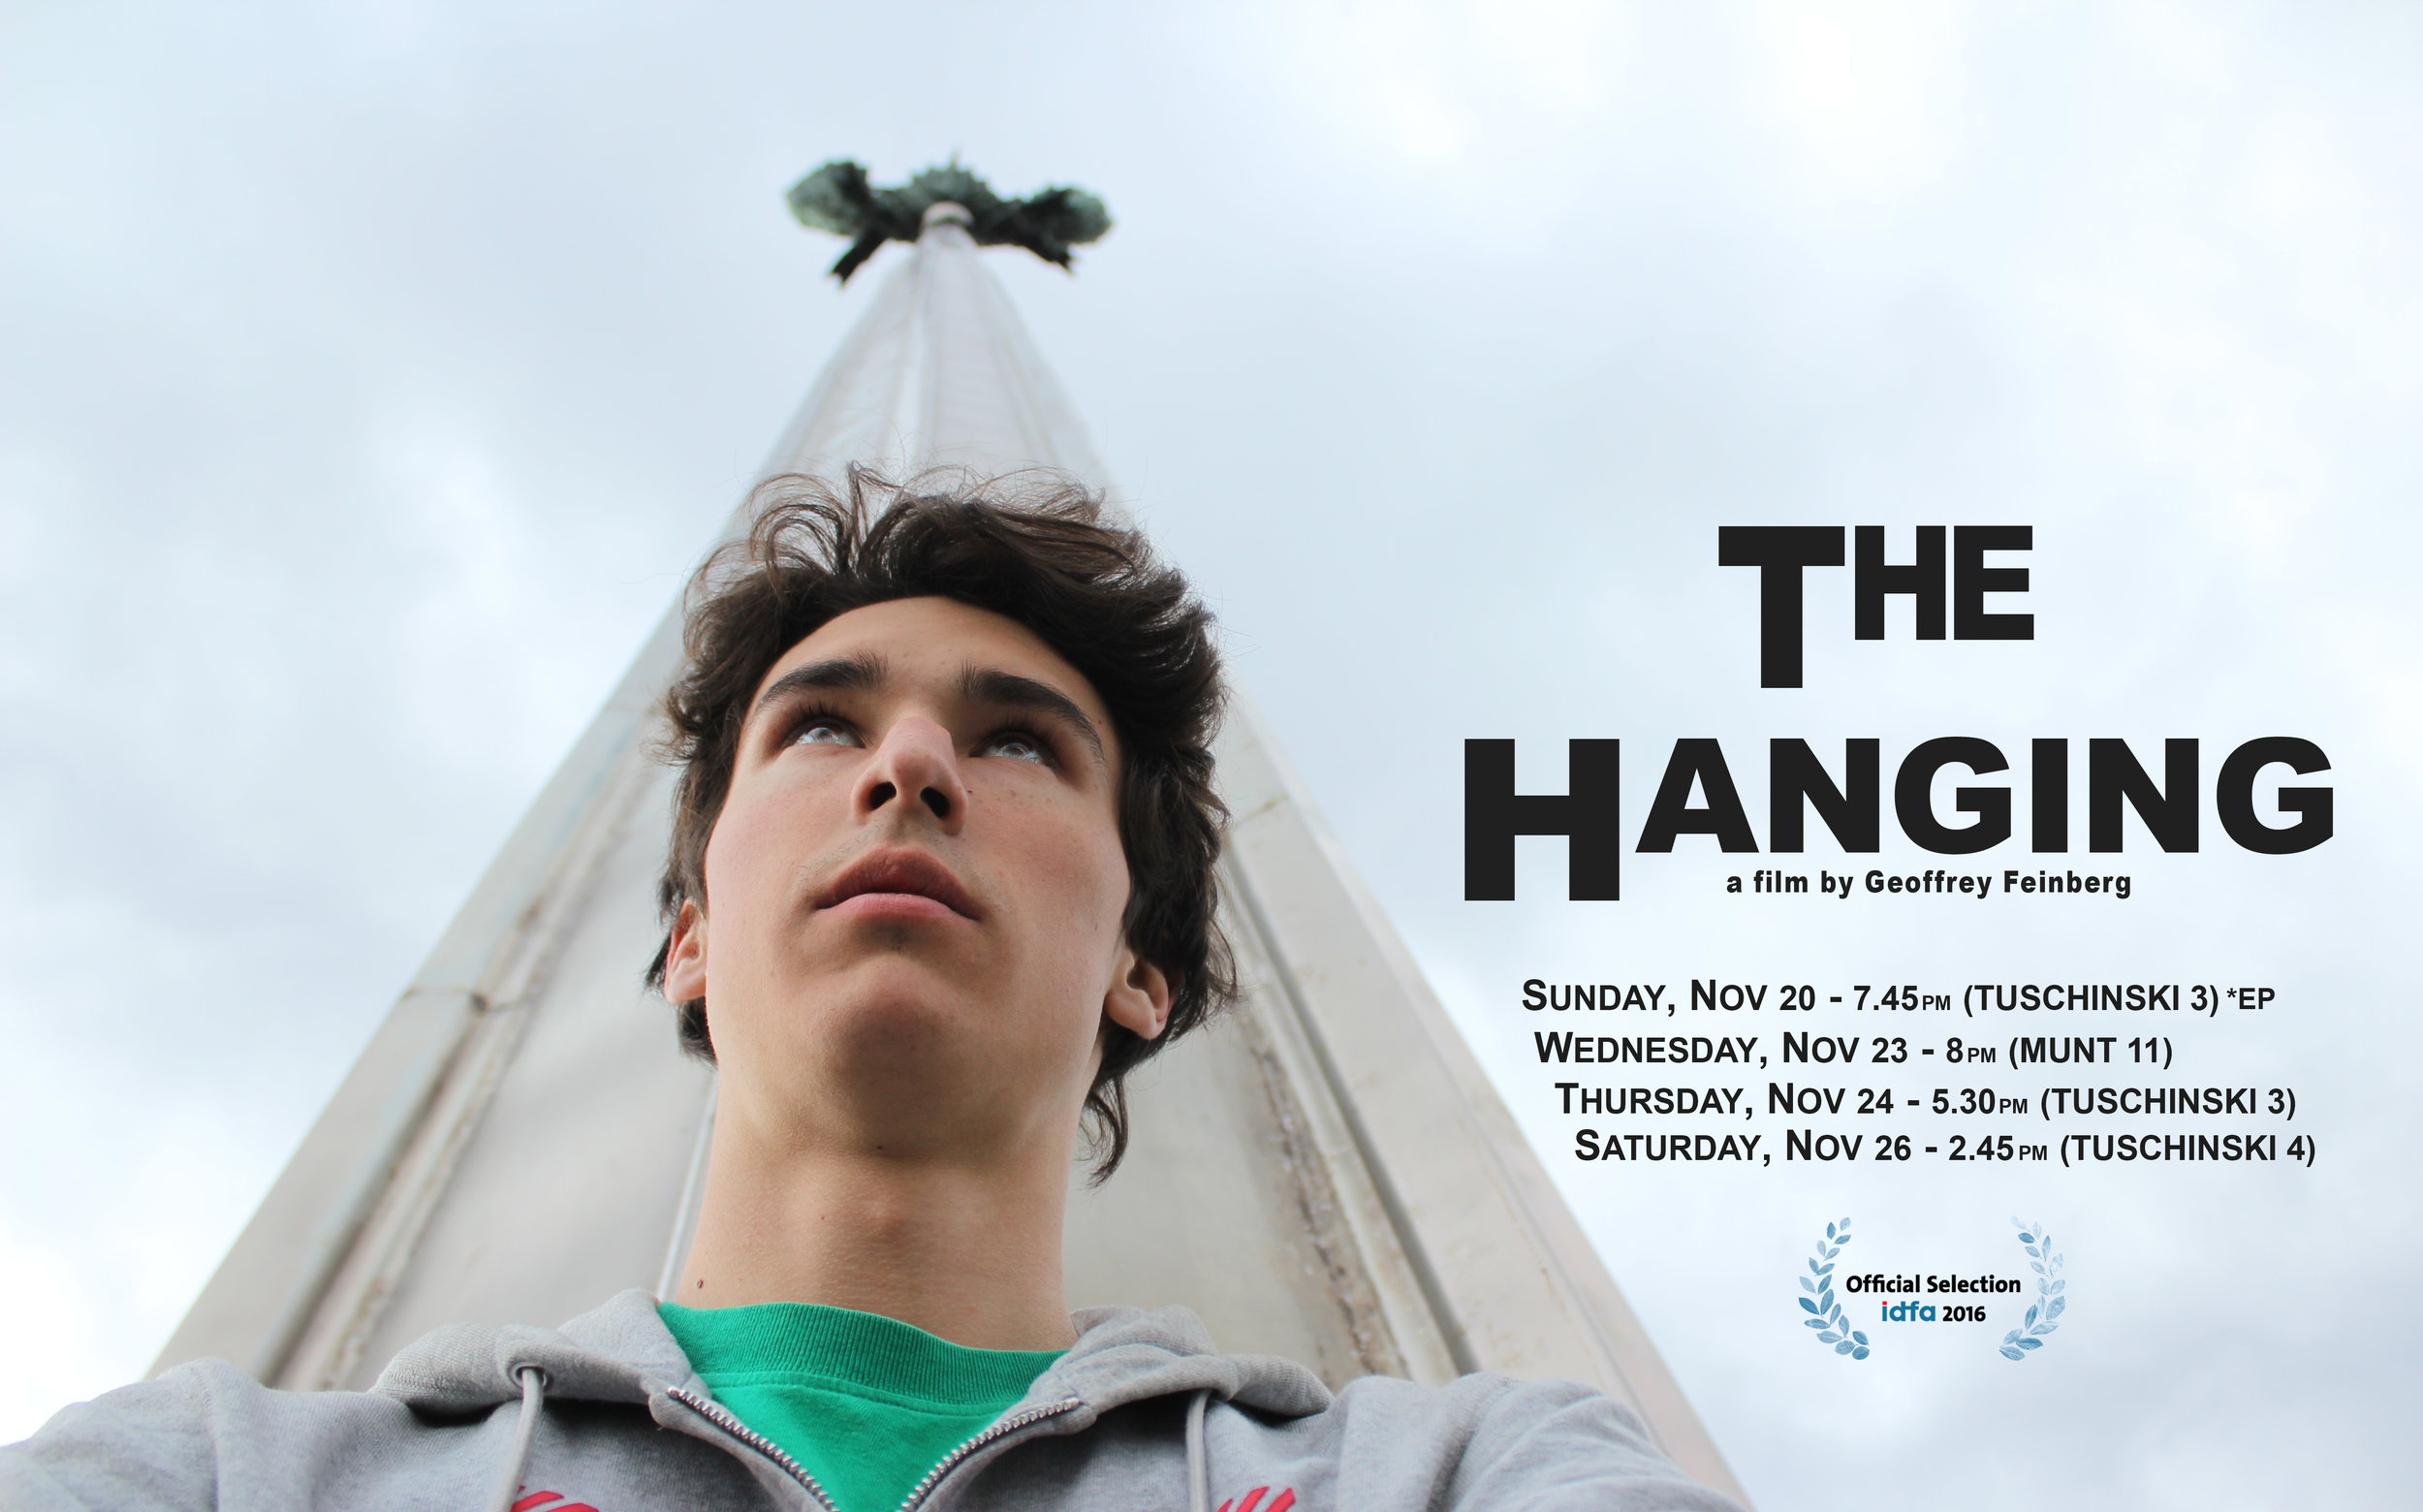 THE HANGING is having its European premiere at IDFA '16